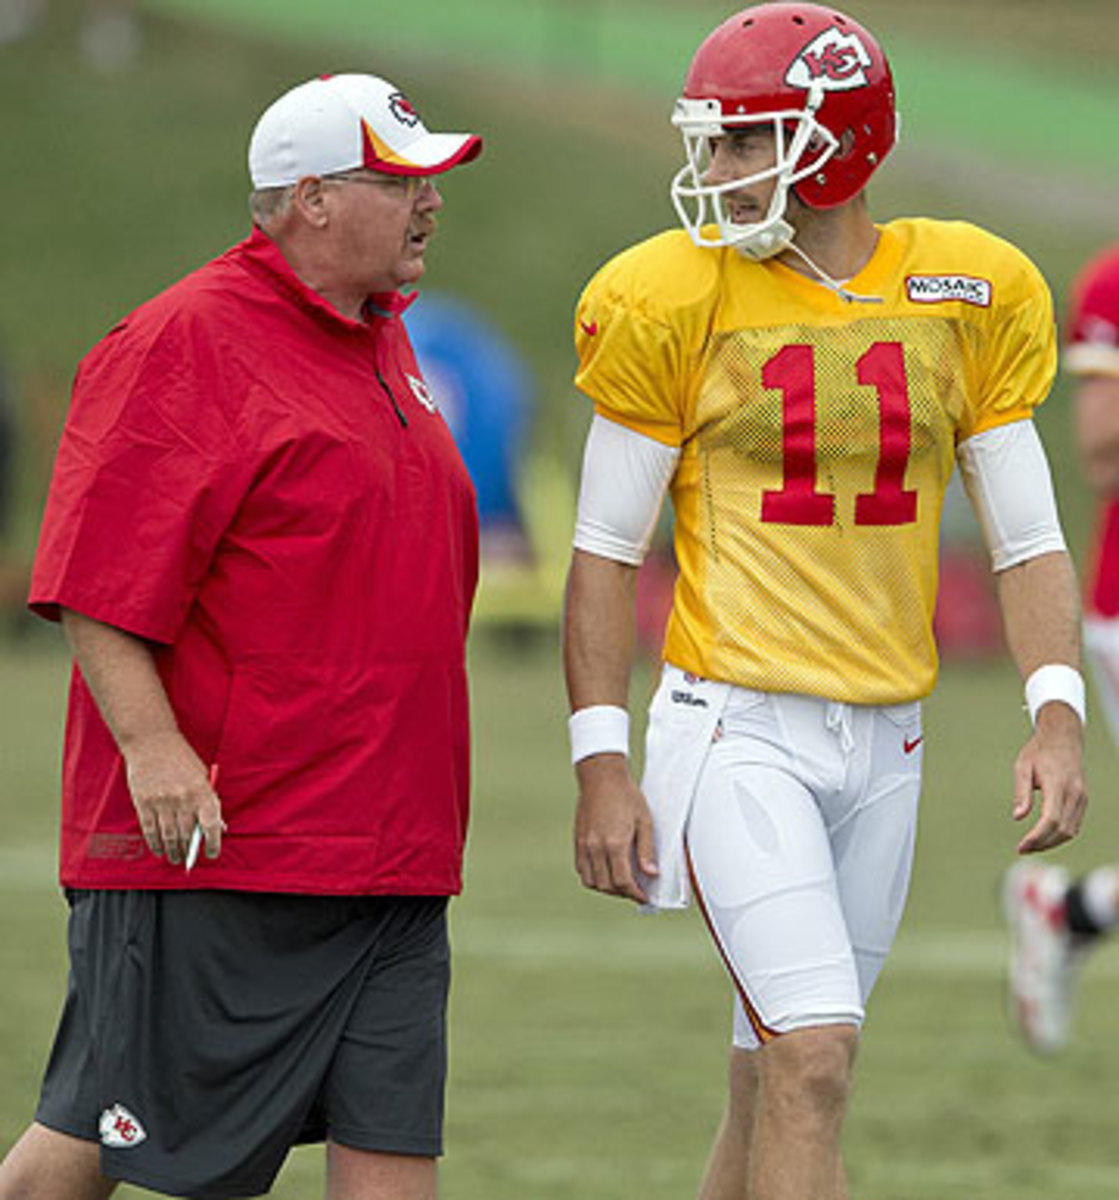 In their first seasons with the Chiefs, Smith and Andy Reid led the team to the playoffs. (David Eulitt/Getty Images)